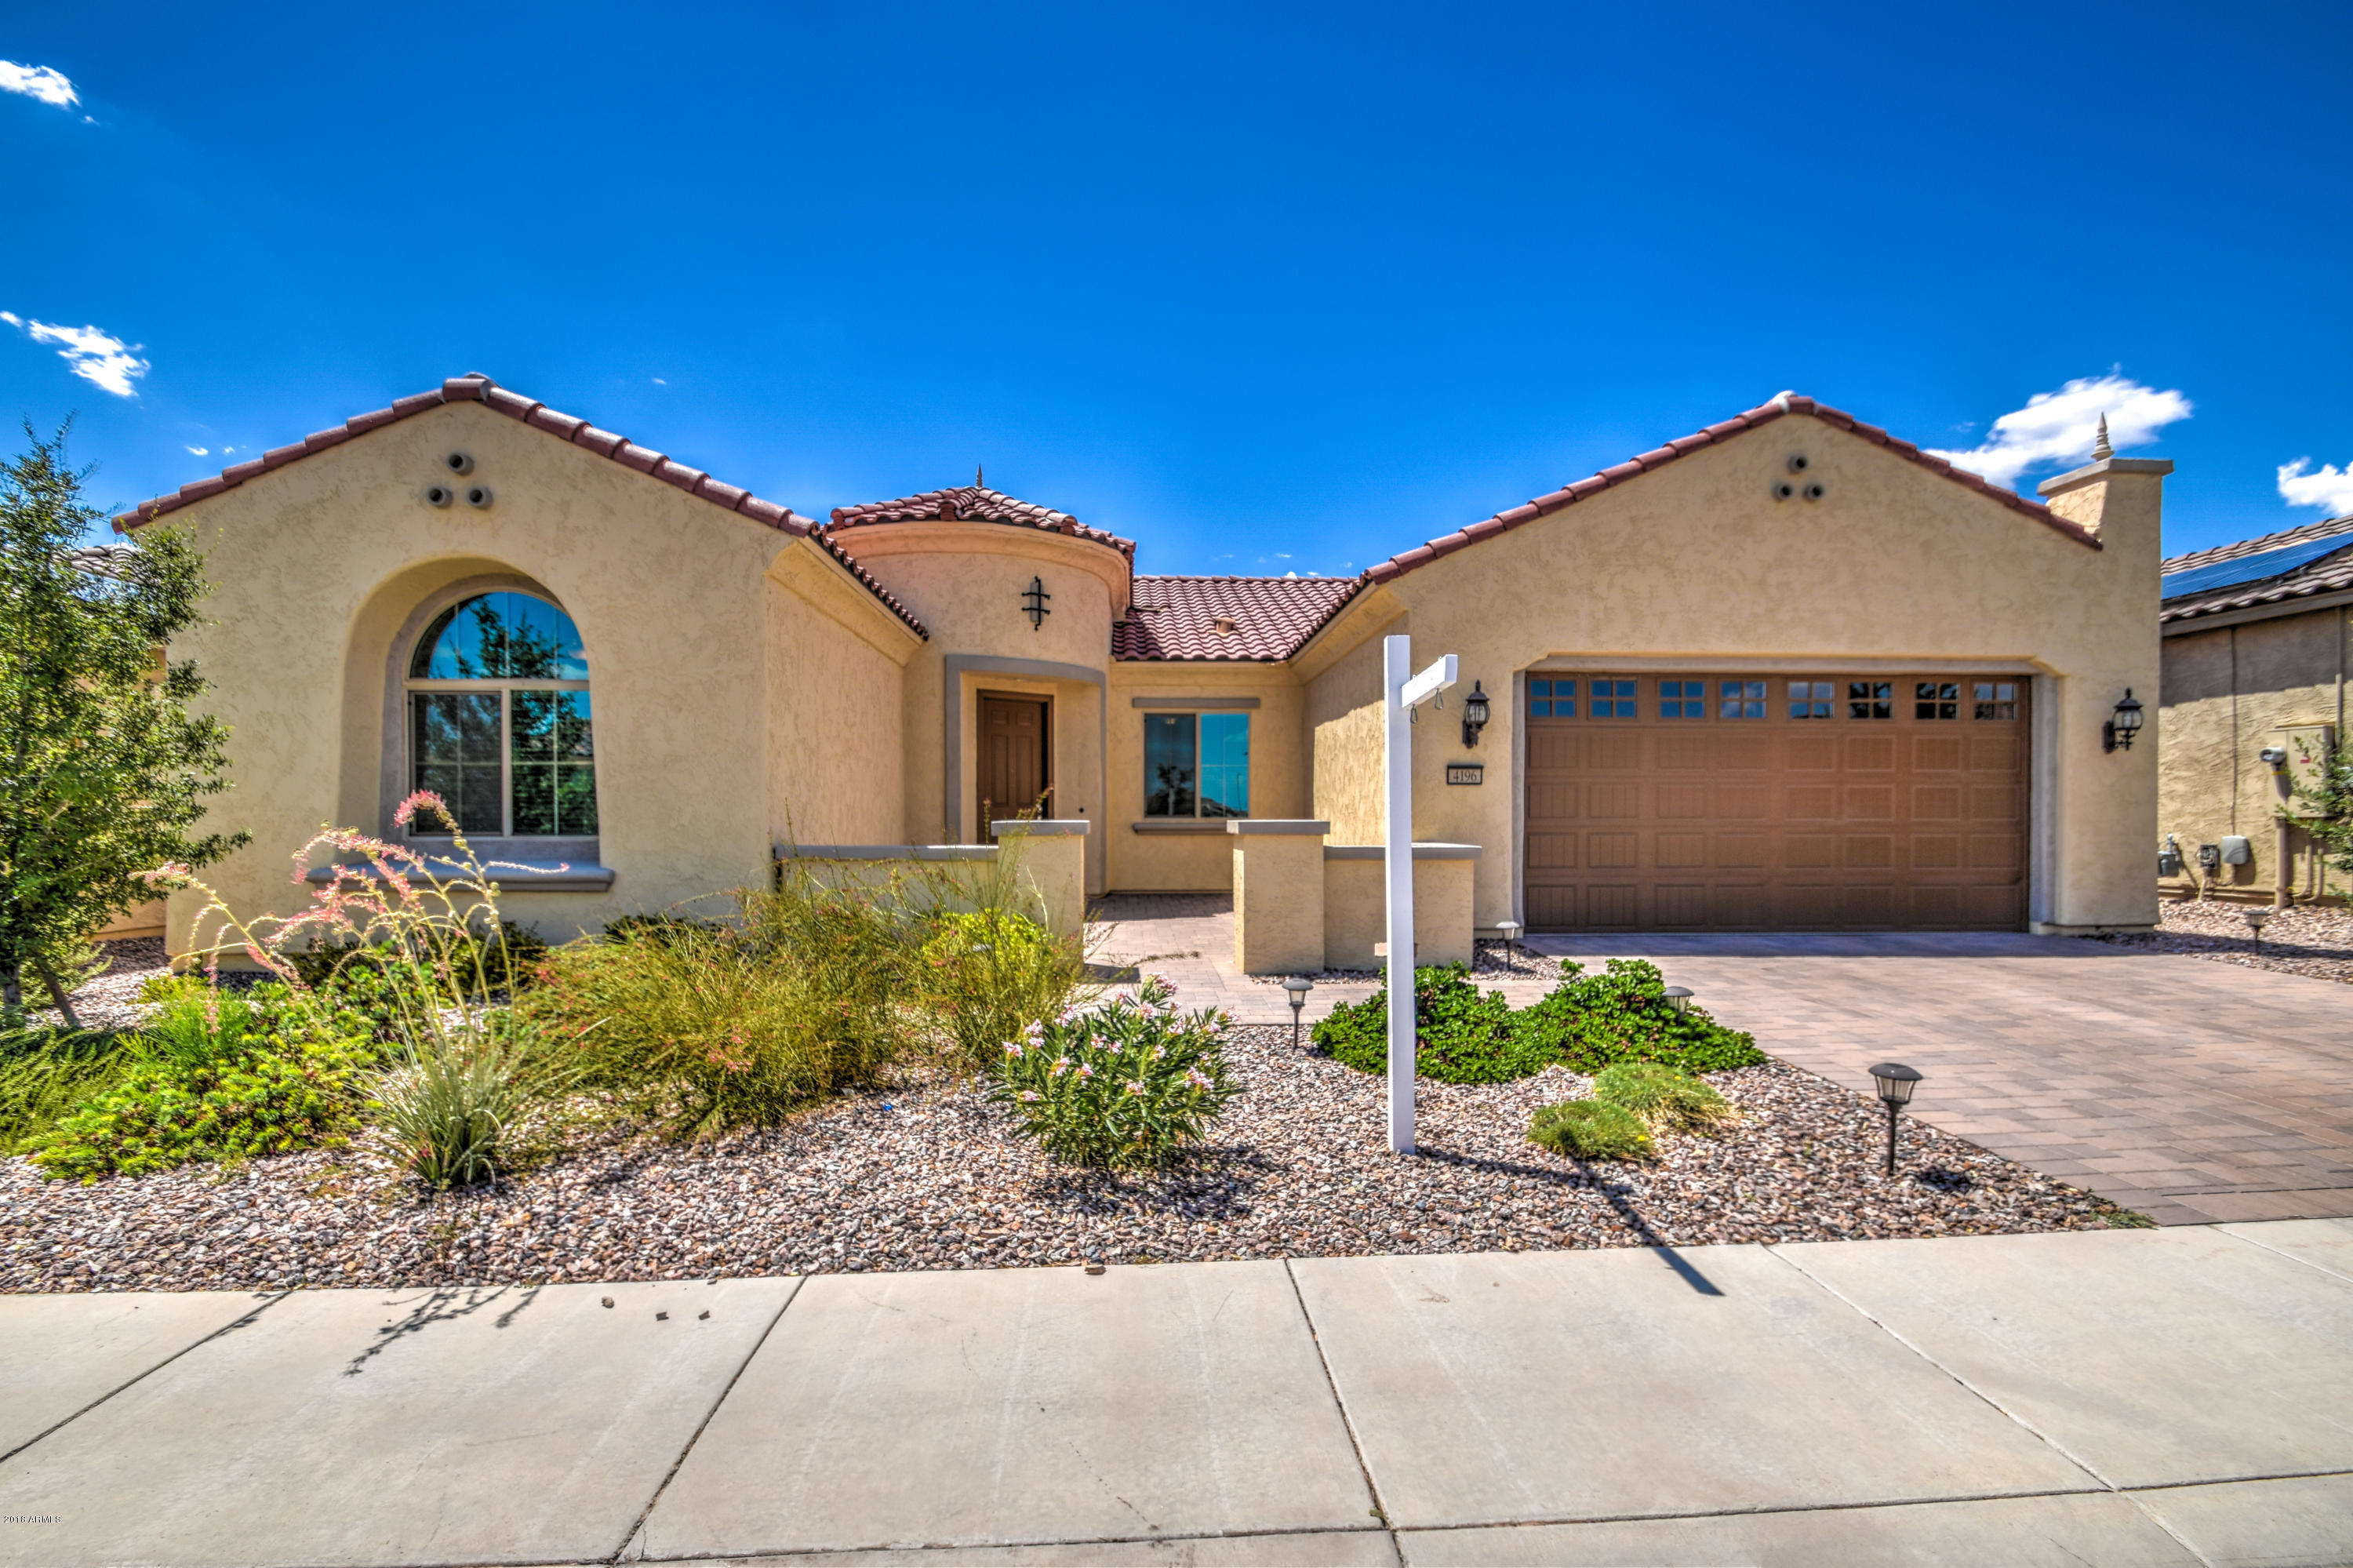 Photo of 4196 N POTOMAC Drive, Florence, AZ 85132